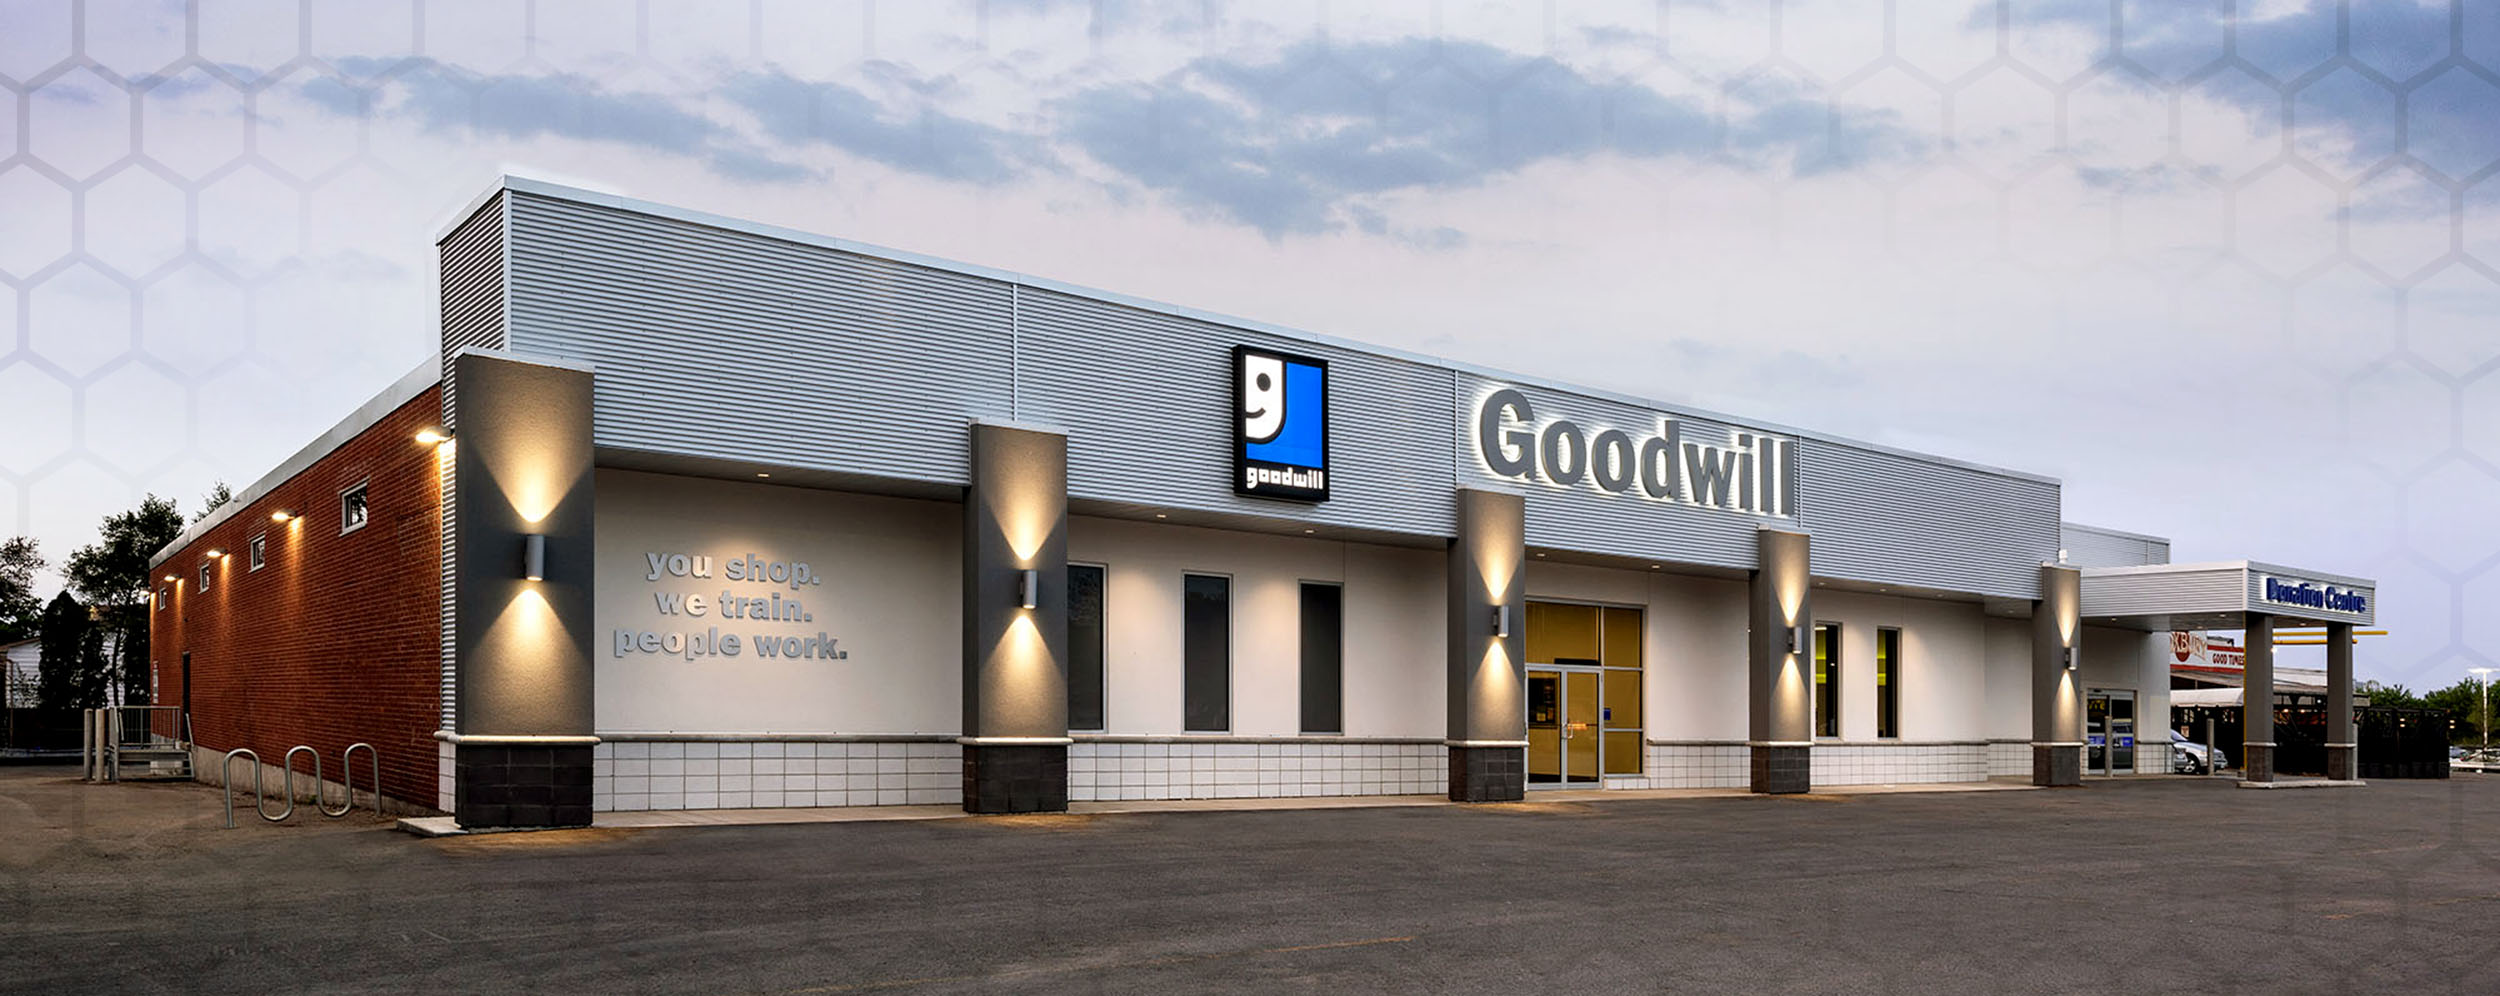 Commercial construction project, the Front of Goodwill store, London, Ontario which has 5 grey columns with lights, white exterior walls and the Goodwill Sign above the front door. There is a drive through area at the side of the building for donations to be dropped off.